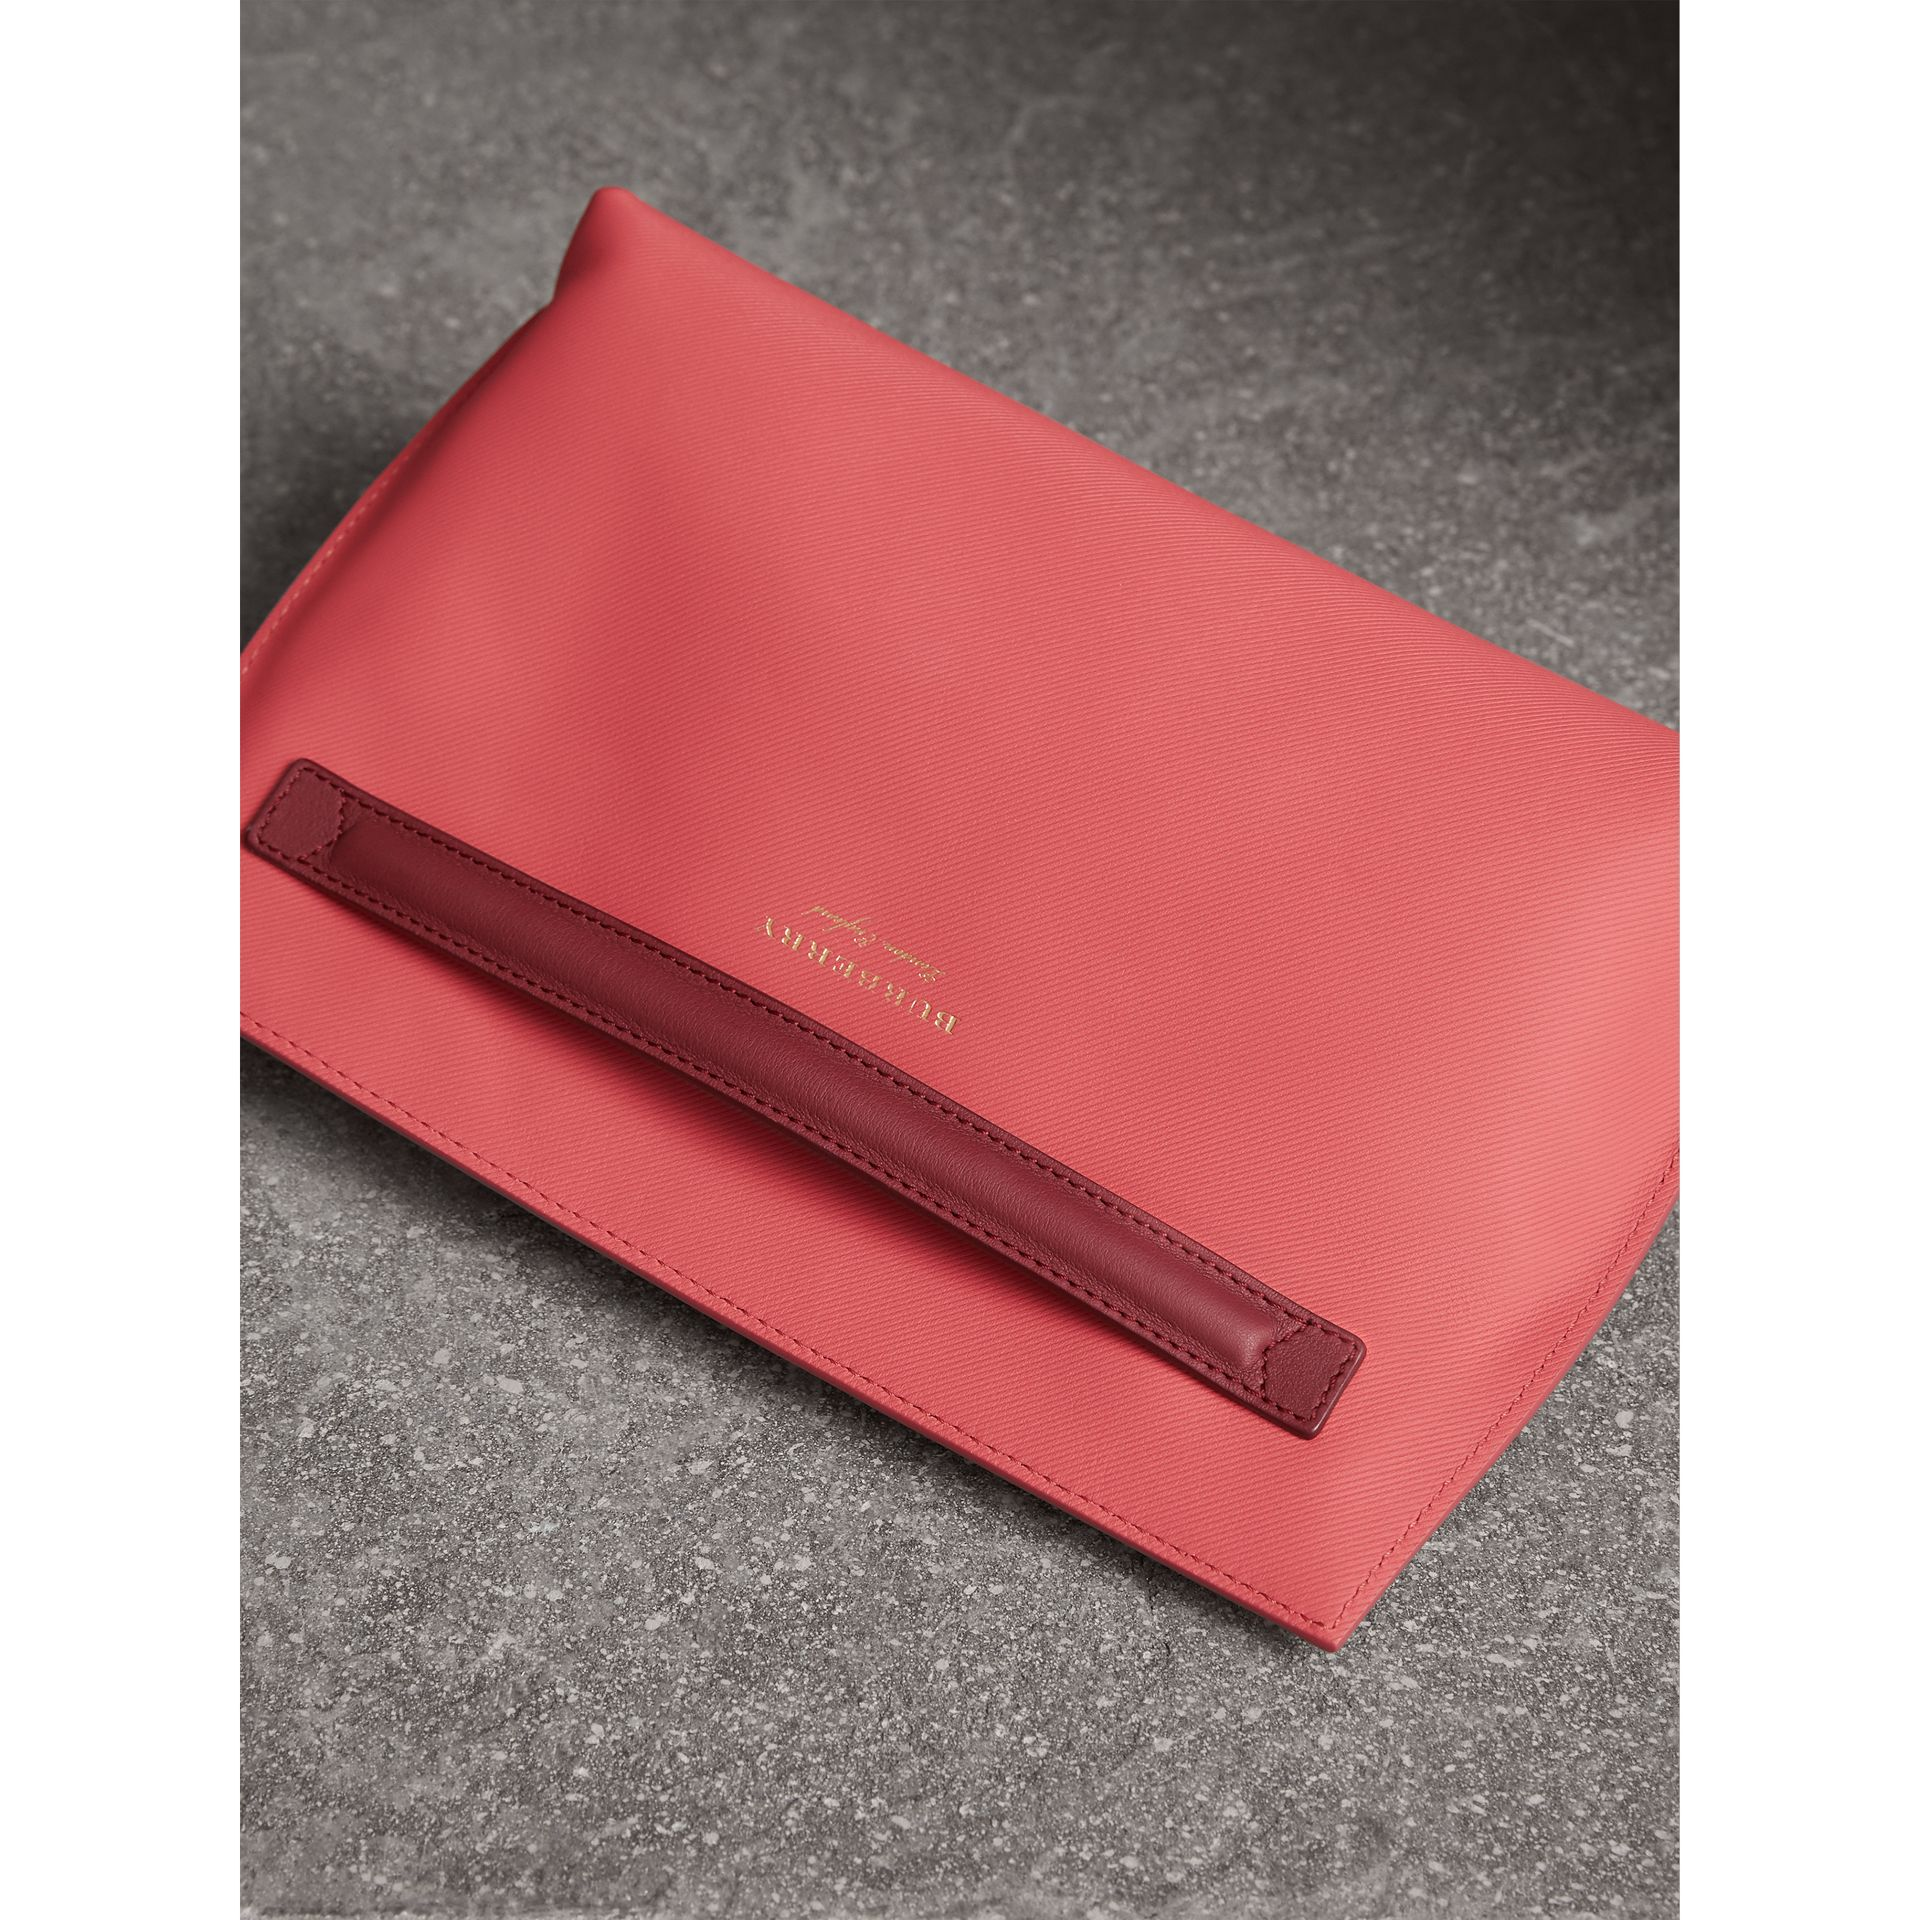 Two-tone Trench Leather Wristlet Pouch in Blossom Pink/antique Red - Women | Burberry - gallery image 5